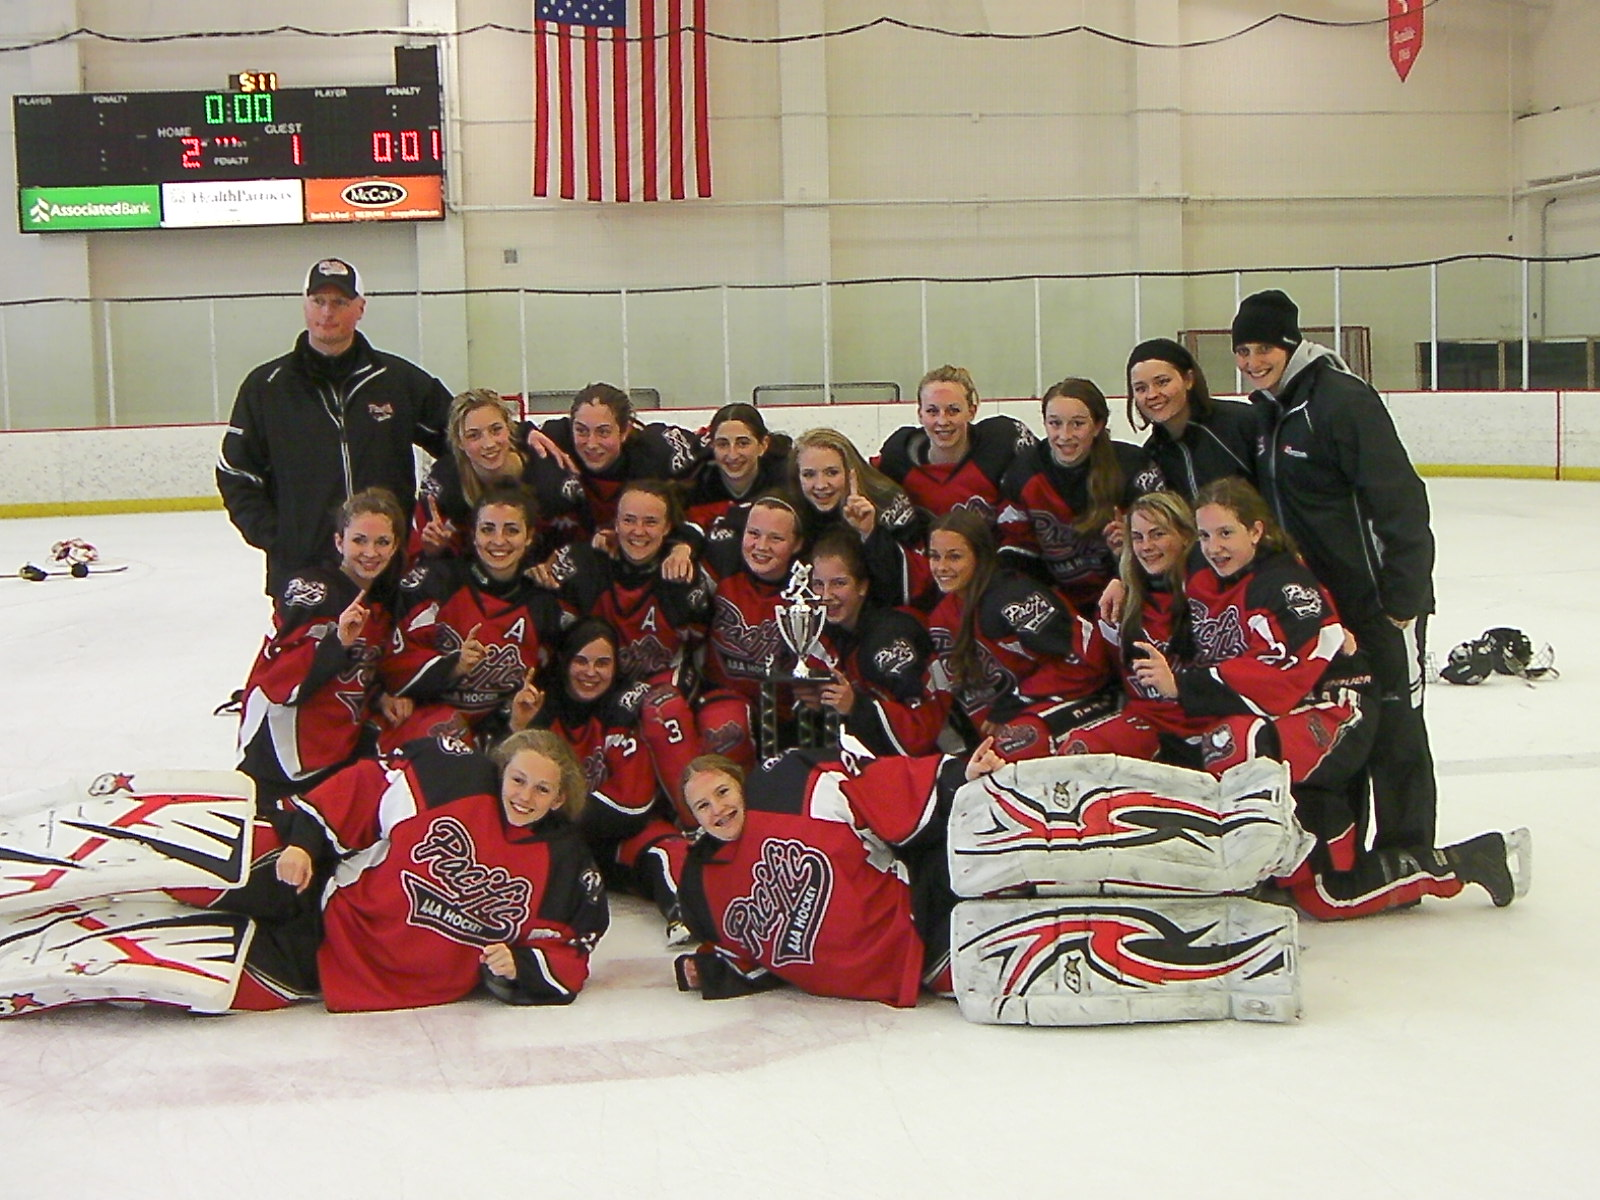 Team Pacific Elite Wins Minnesota Meltdown